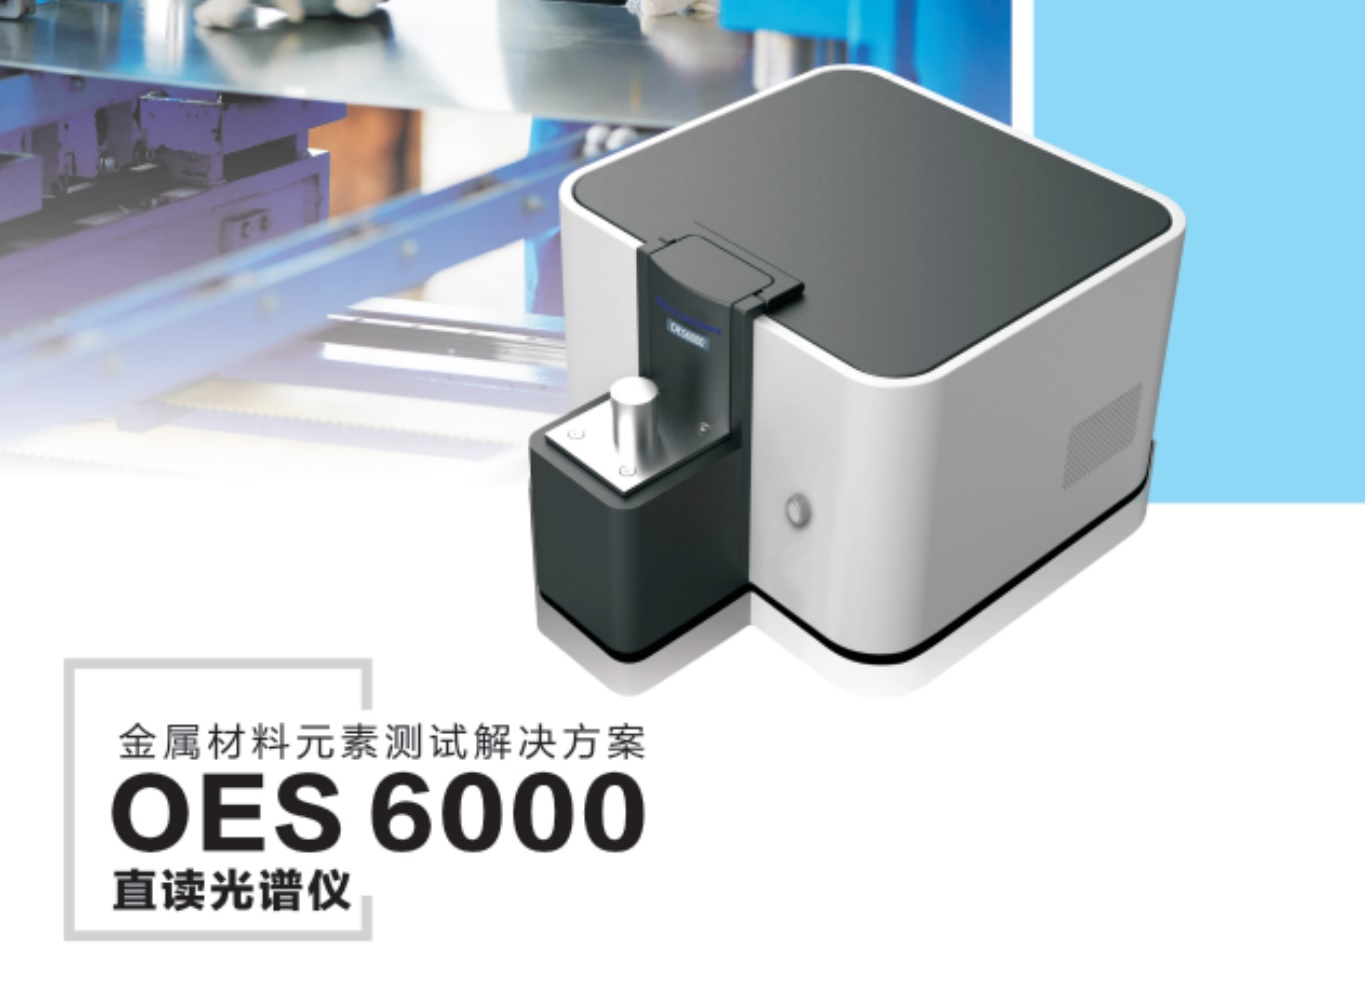 Jiangsu Skyray Instrument Co., Ltd.-OES6000